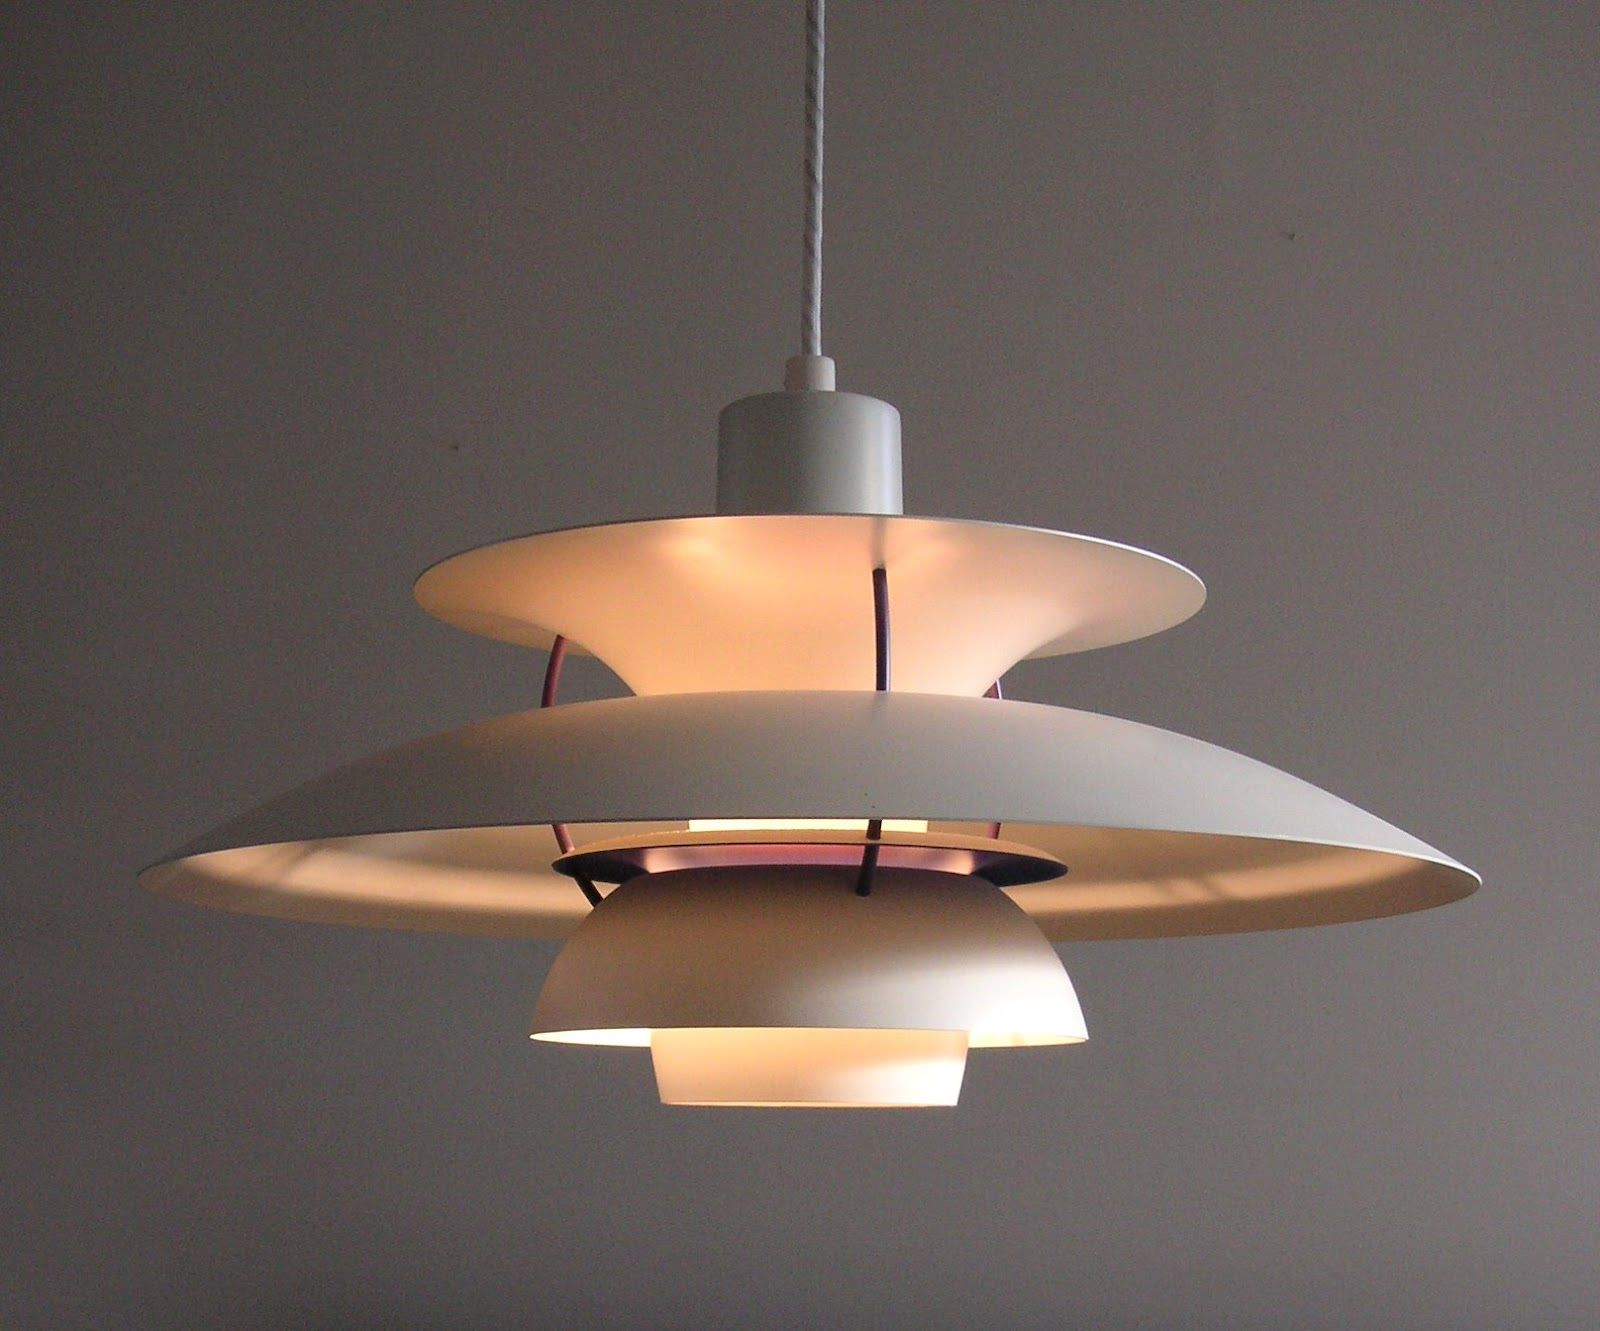 PH Lamp By Louis Poulsen | Details | Pinterest | Modern dining room ...